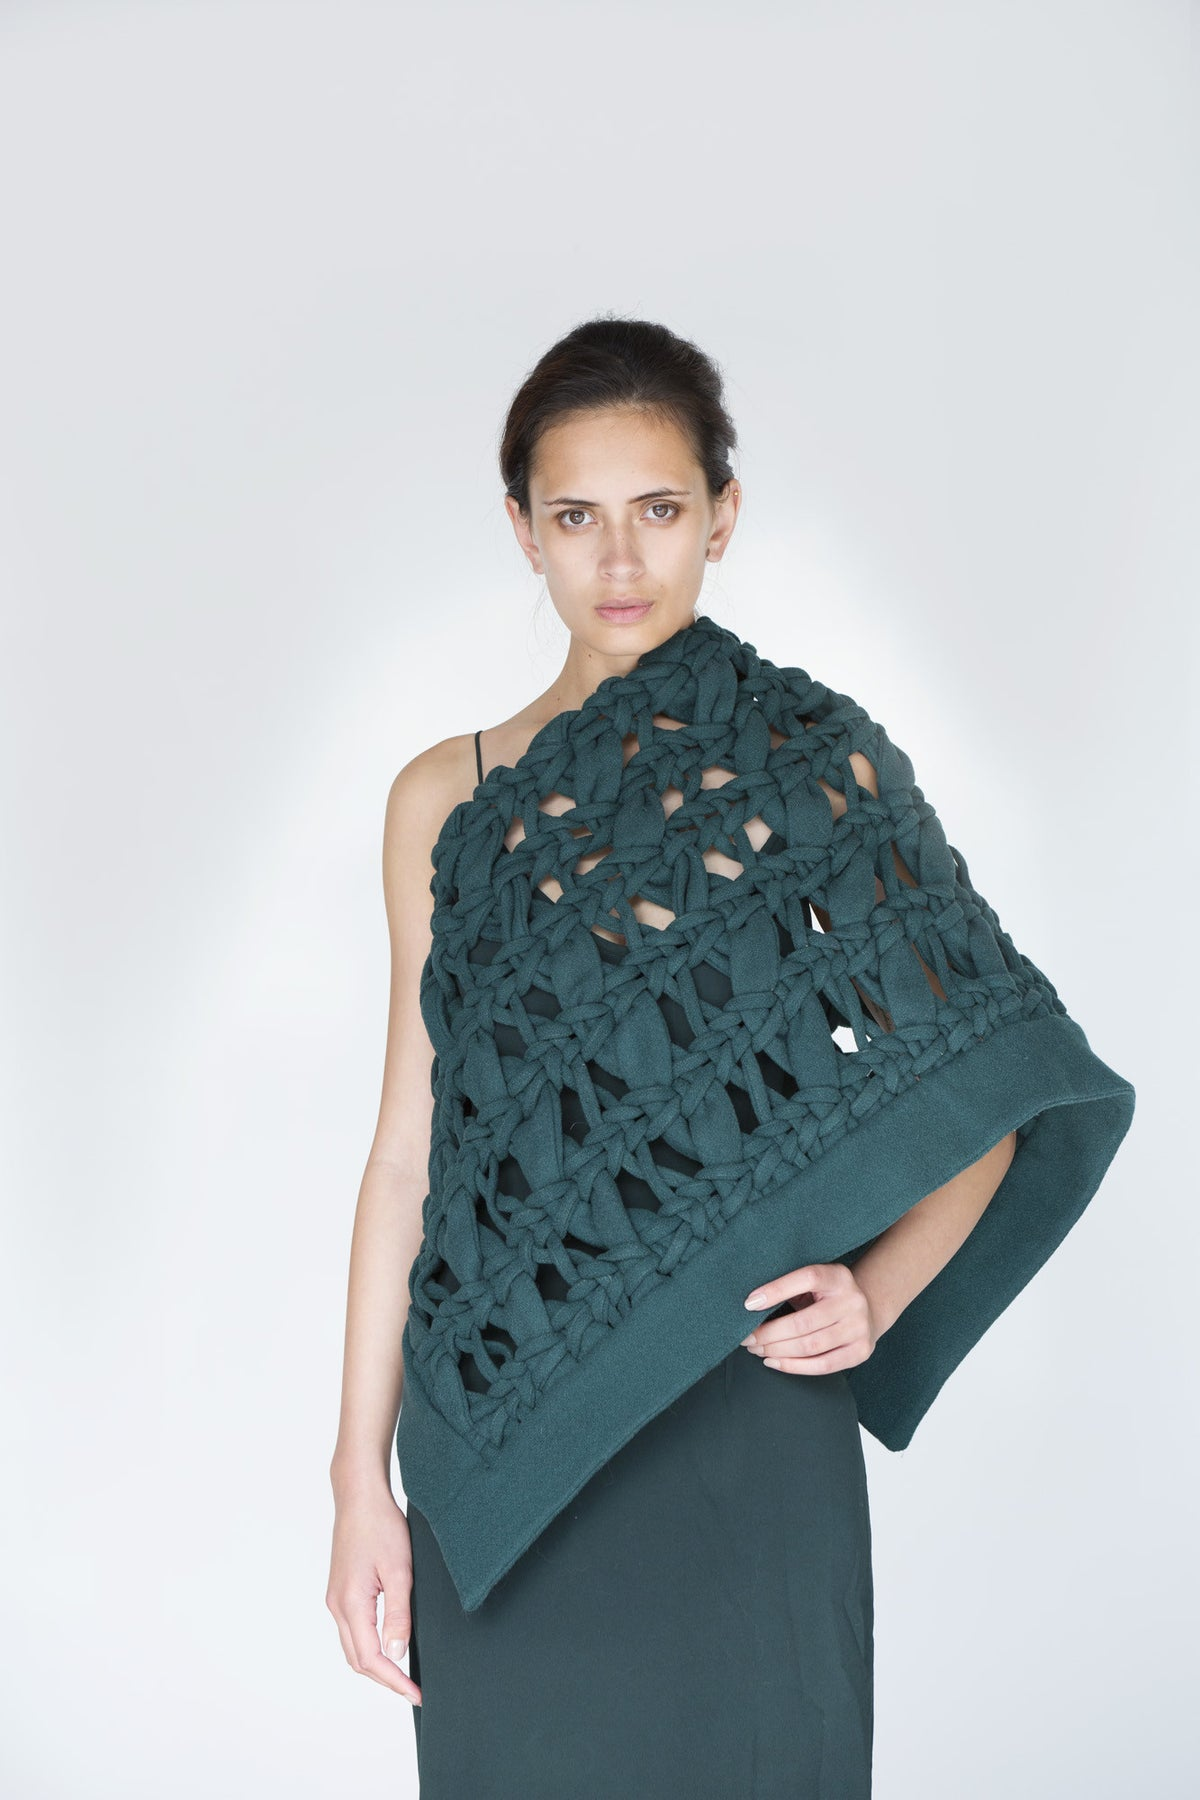 Contemporary Handwoven 100% Wool Cloak or Art Piece